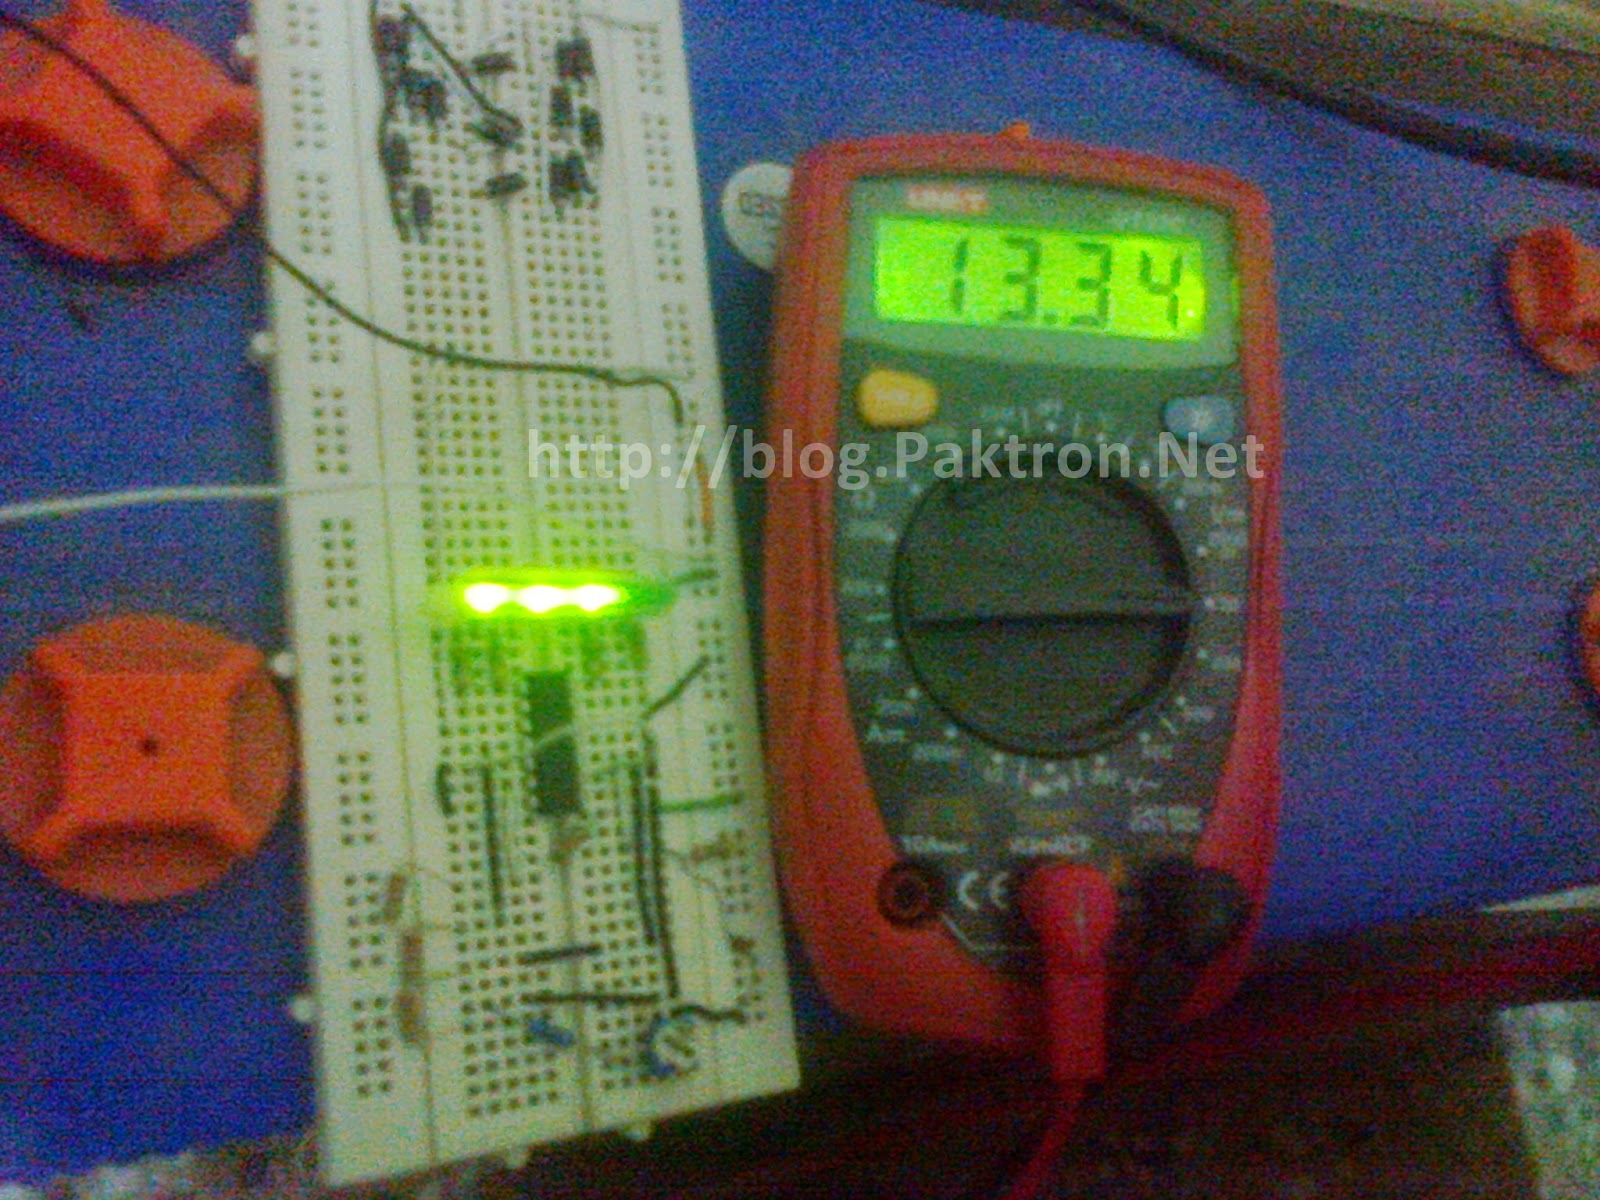 battery level indicator 2 on circuit board